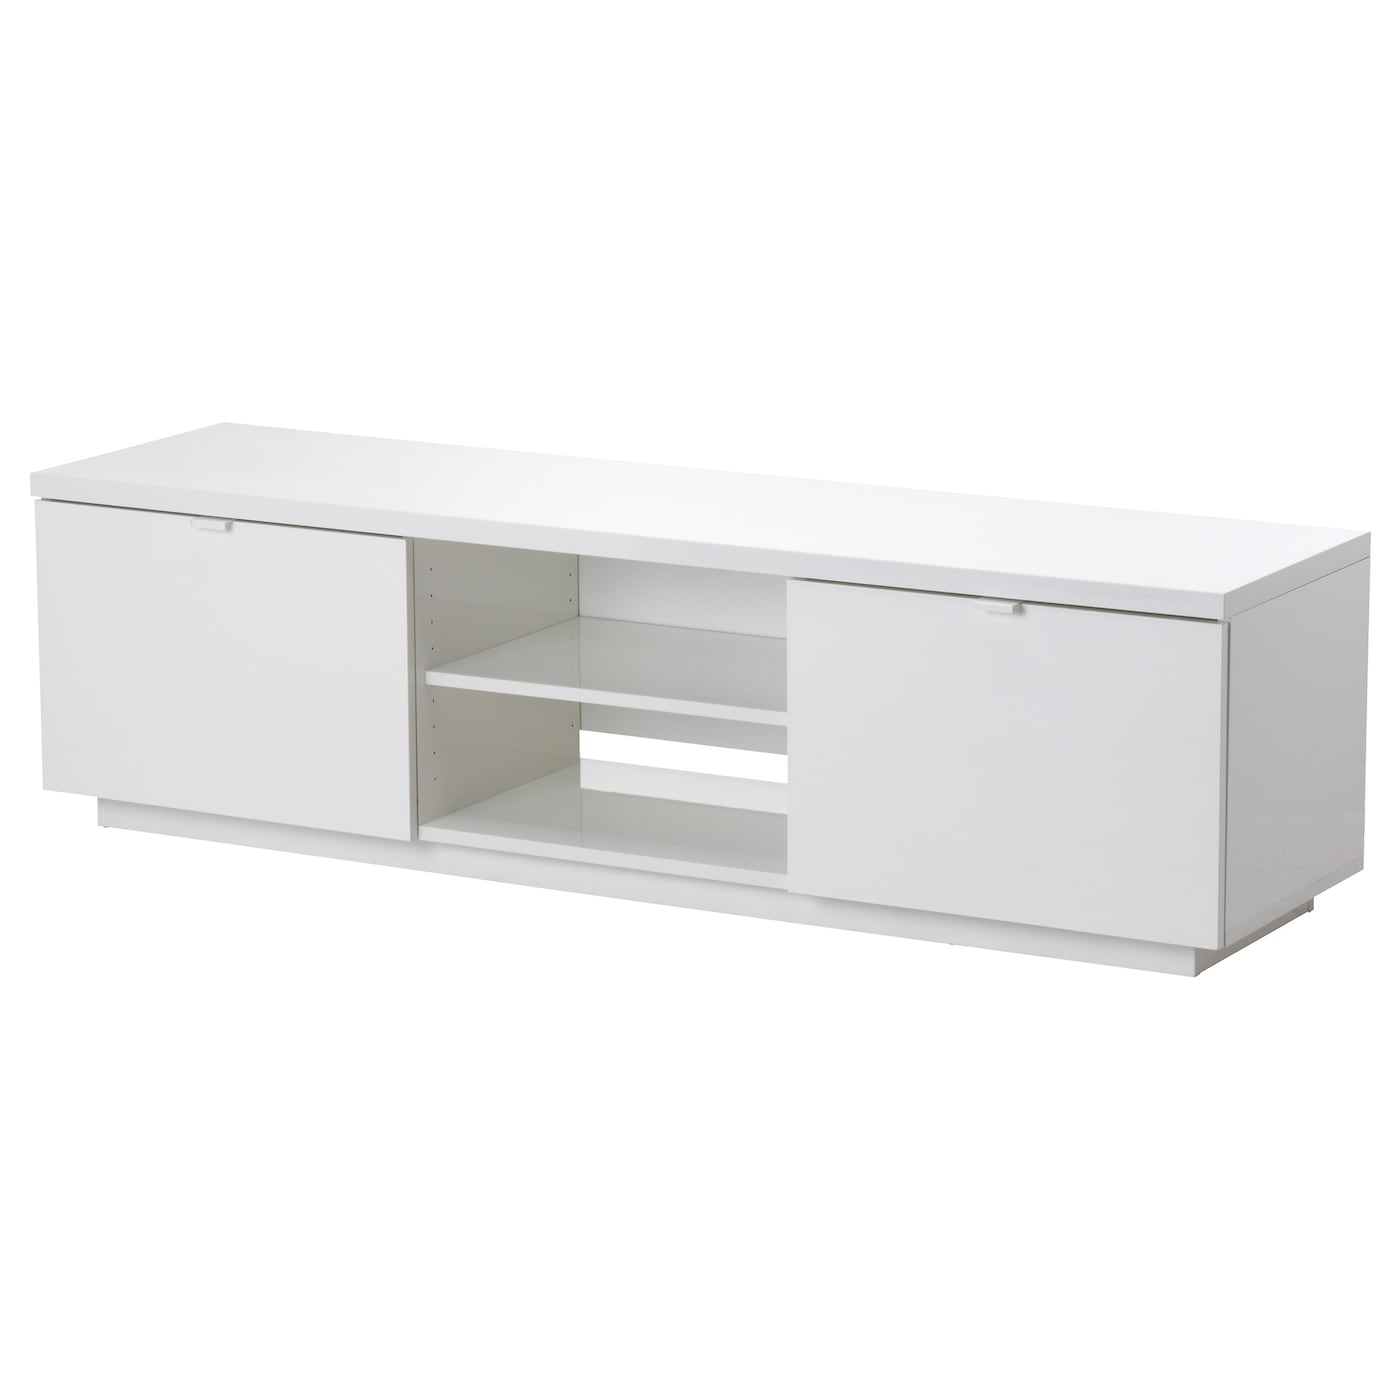 Meuble Tv Ikea Metal - Tv Stands Media Units Ikea Ireland Dublin[mjhdah]http://www.ikea.com/ie/en/images/products/best%C3%A5-tv-bench-white__0384984_pe557581_s5.jpg